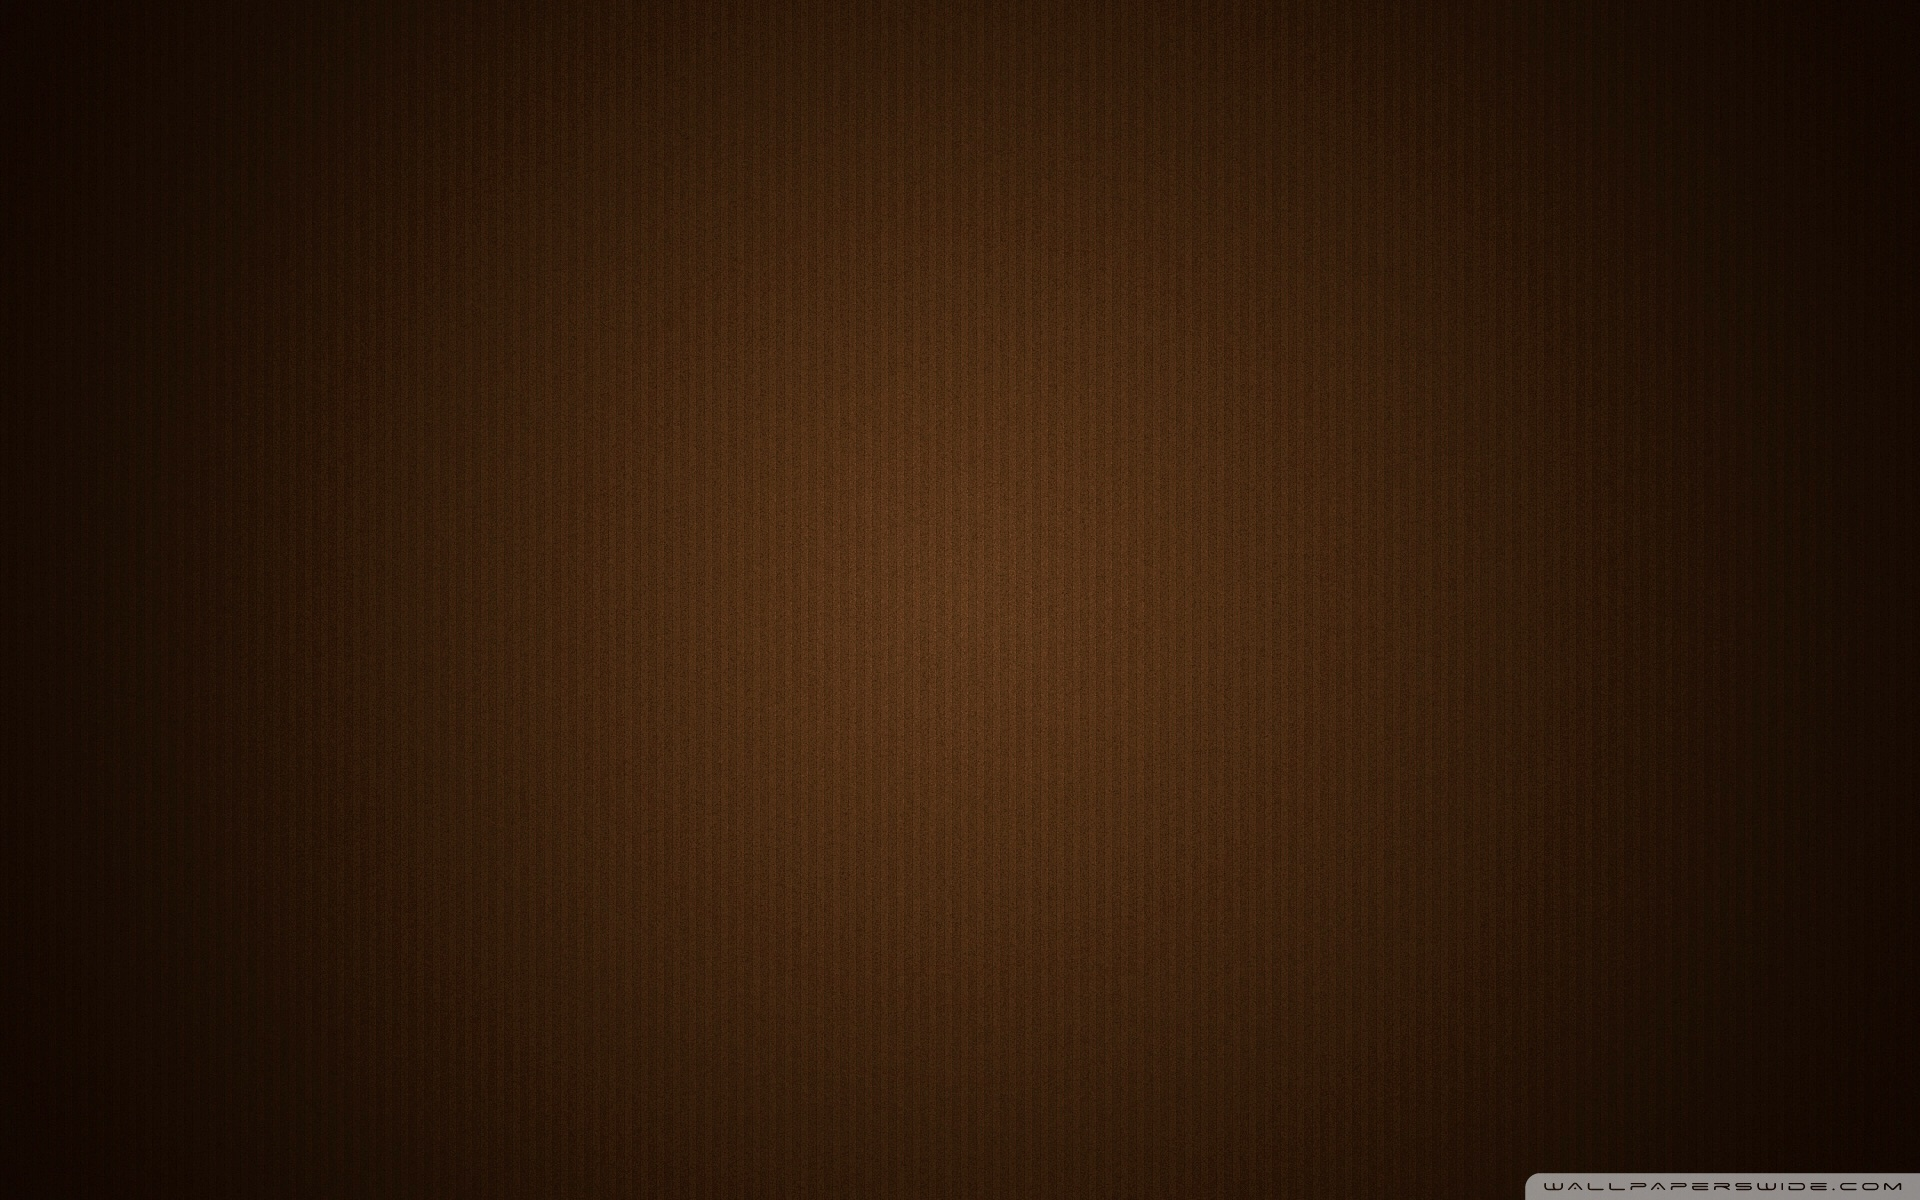 Brown Wallpaper 1920x1200 40003 HD Wallpapers Download Free Images Wallpaper [1000image.com]